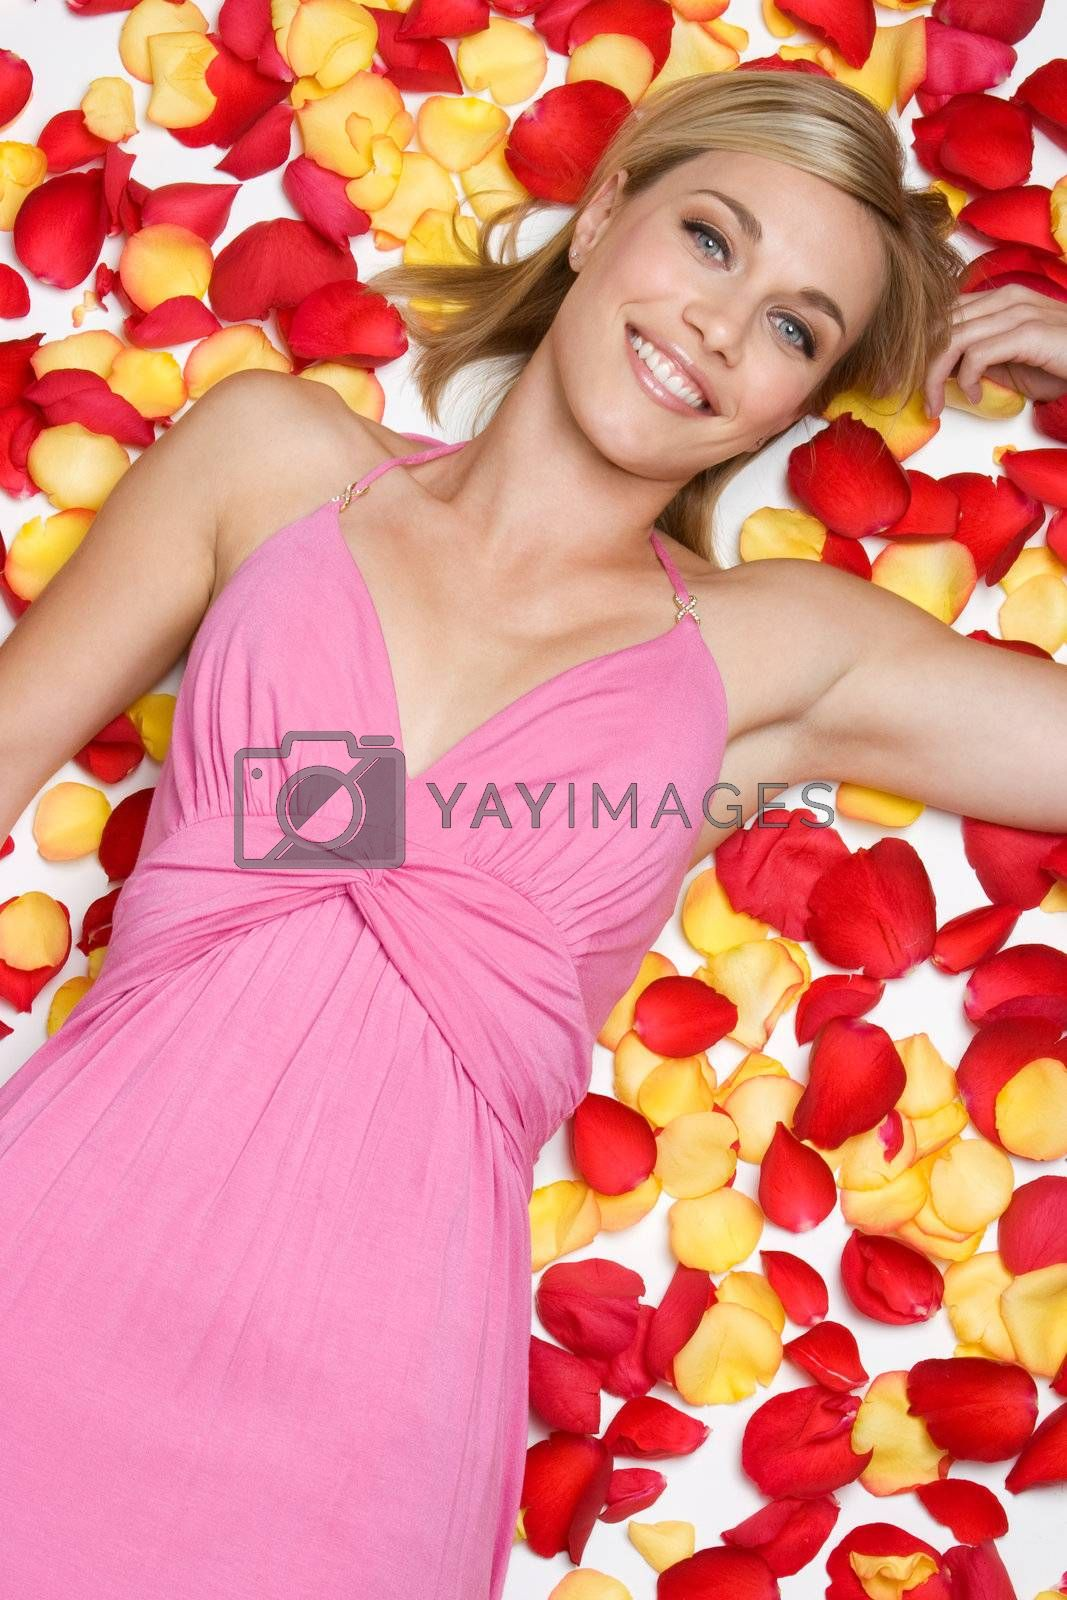 Blond woman laying in petals